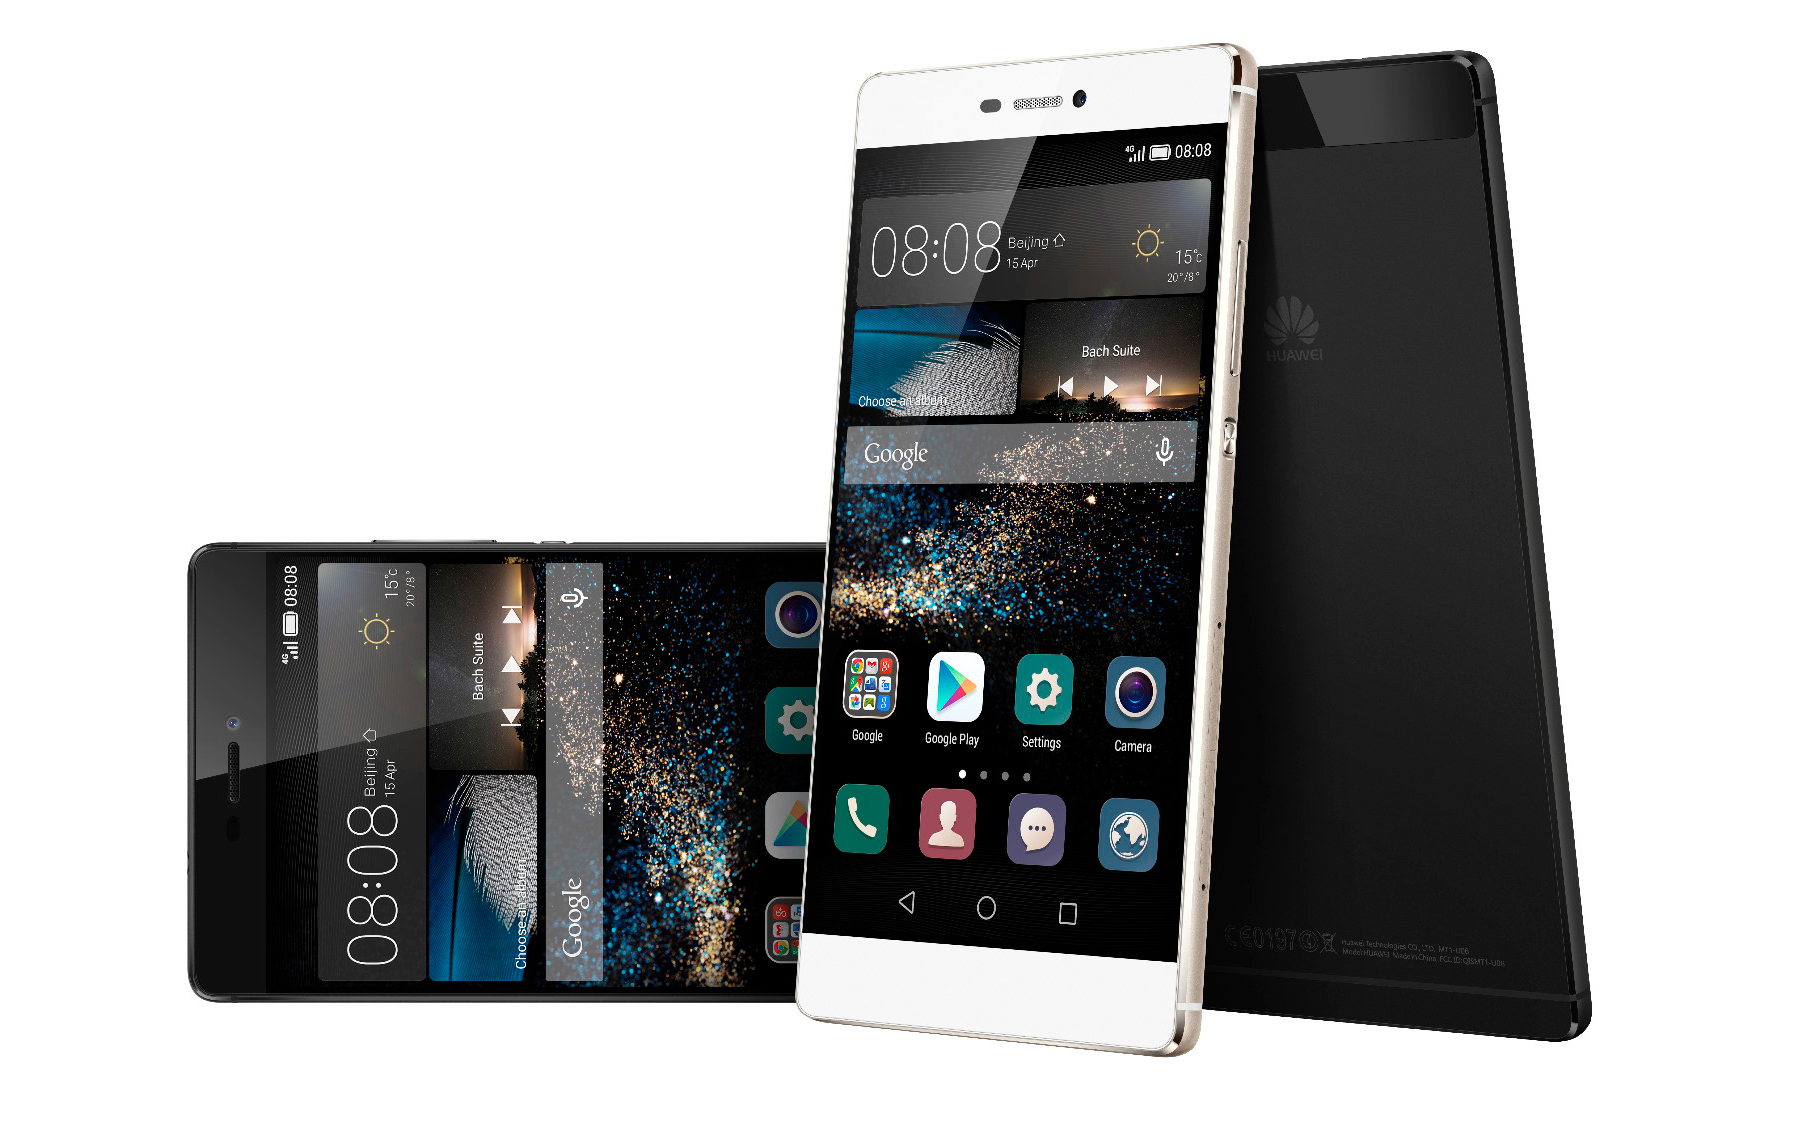 The new Huawei P8.